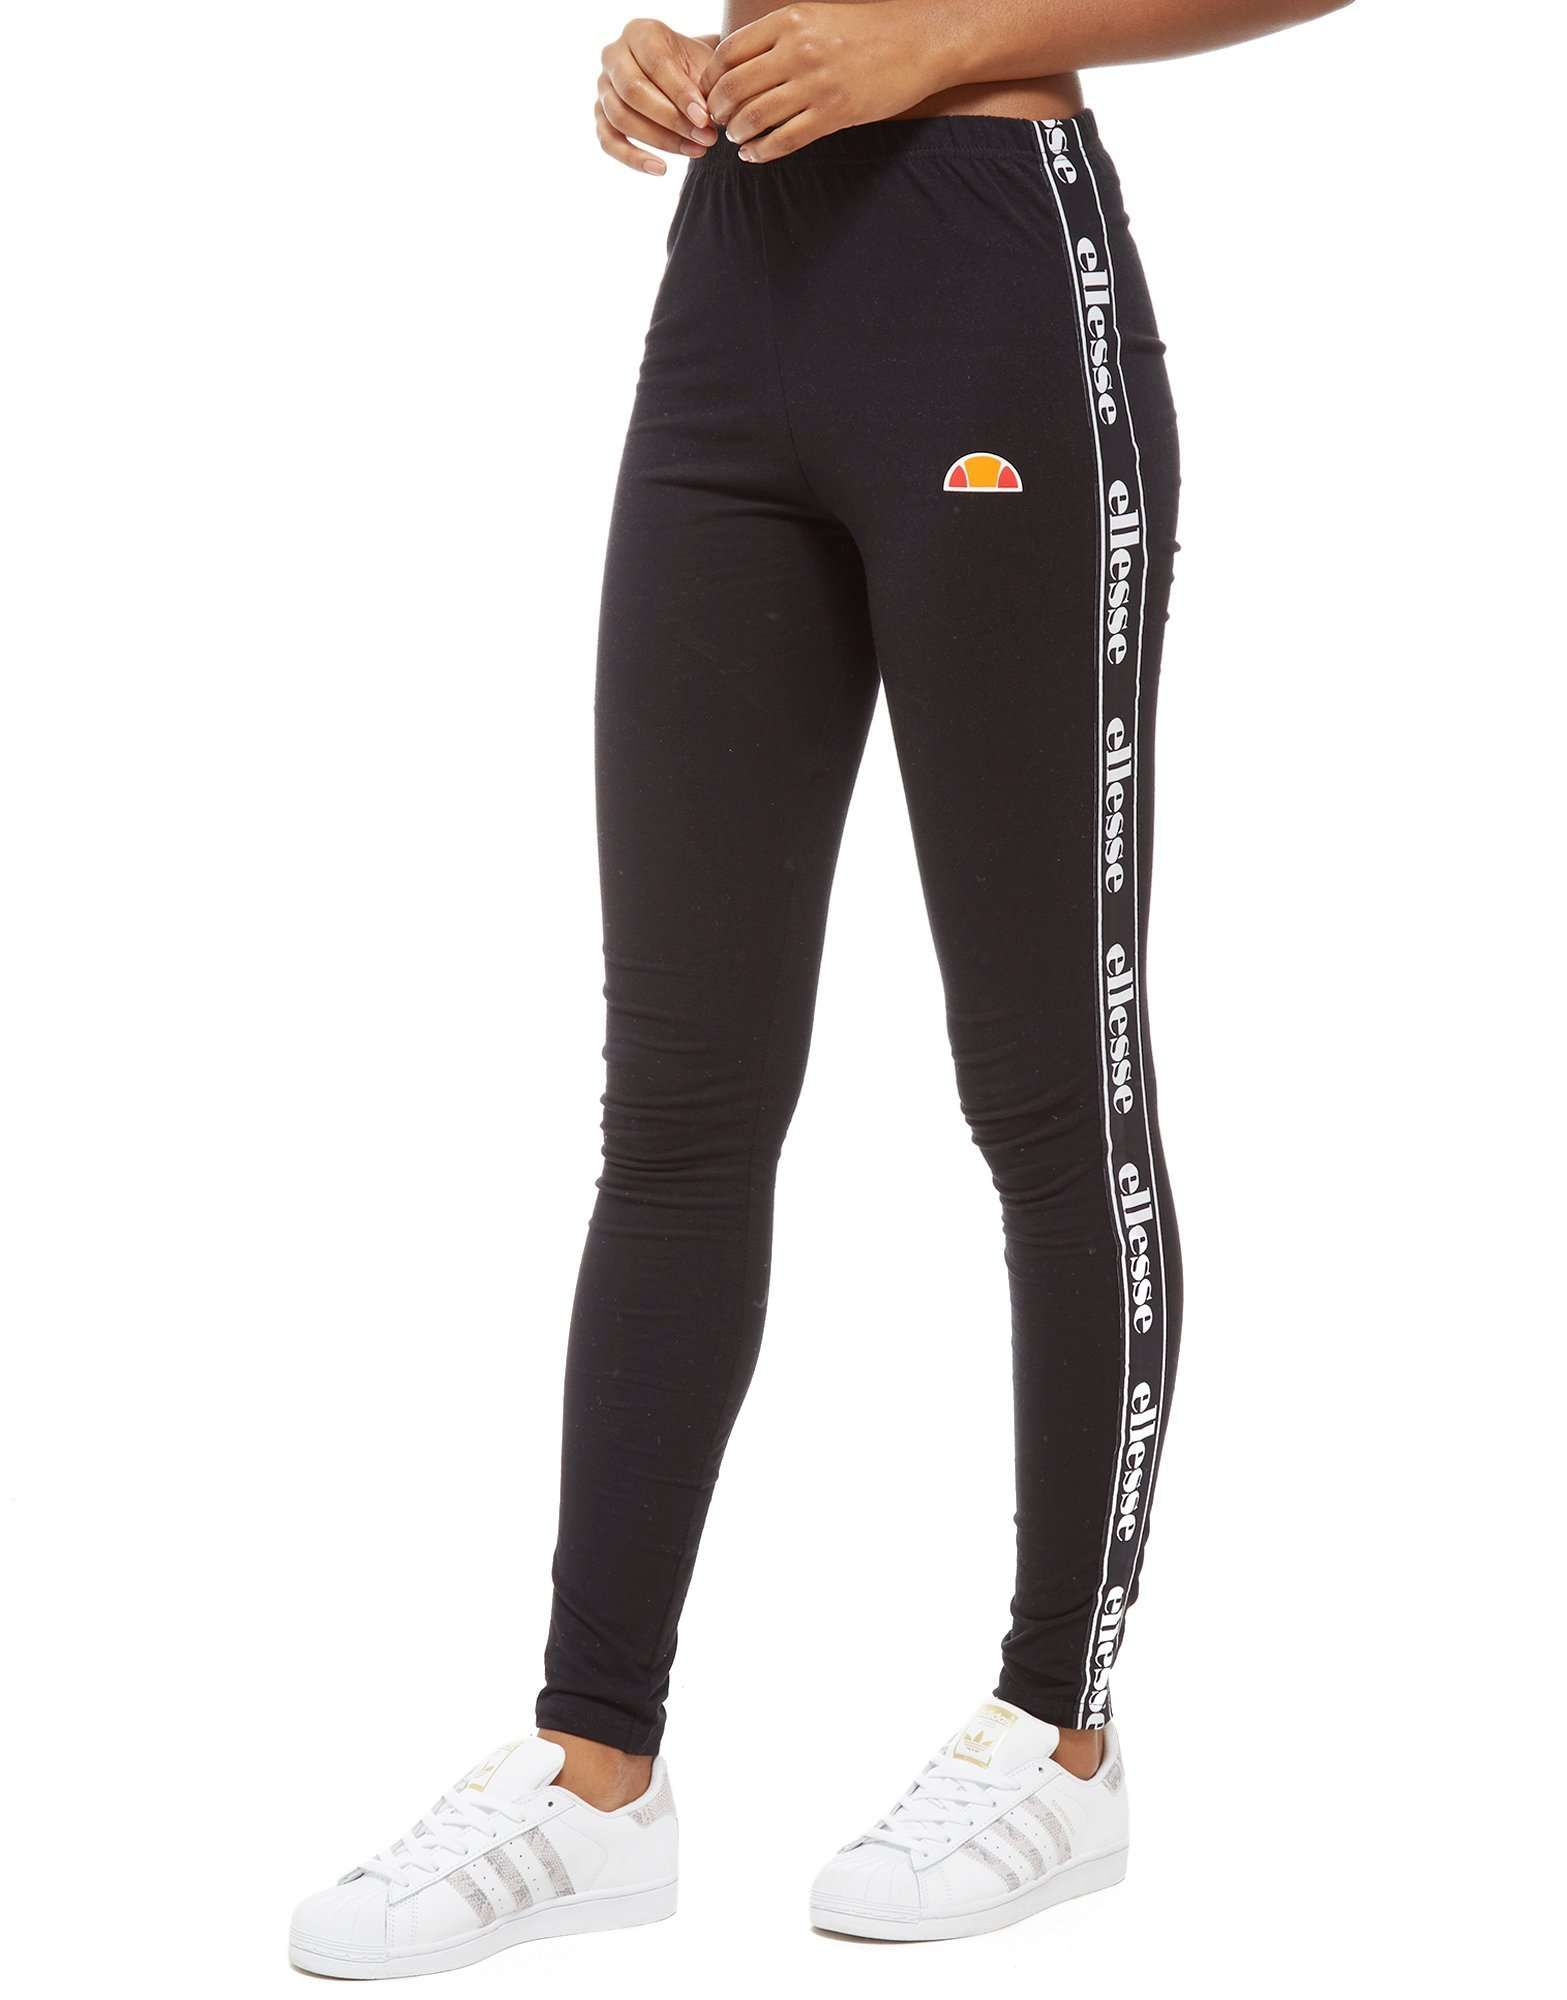 4a6c2b47 Ellesse Tape Leggings - £22 | deli | Ellesse, Ellesse clothing ...